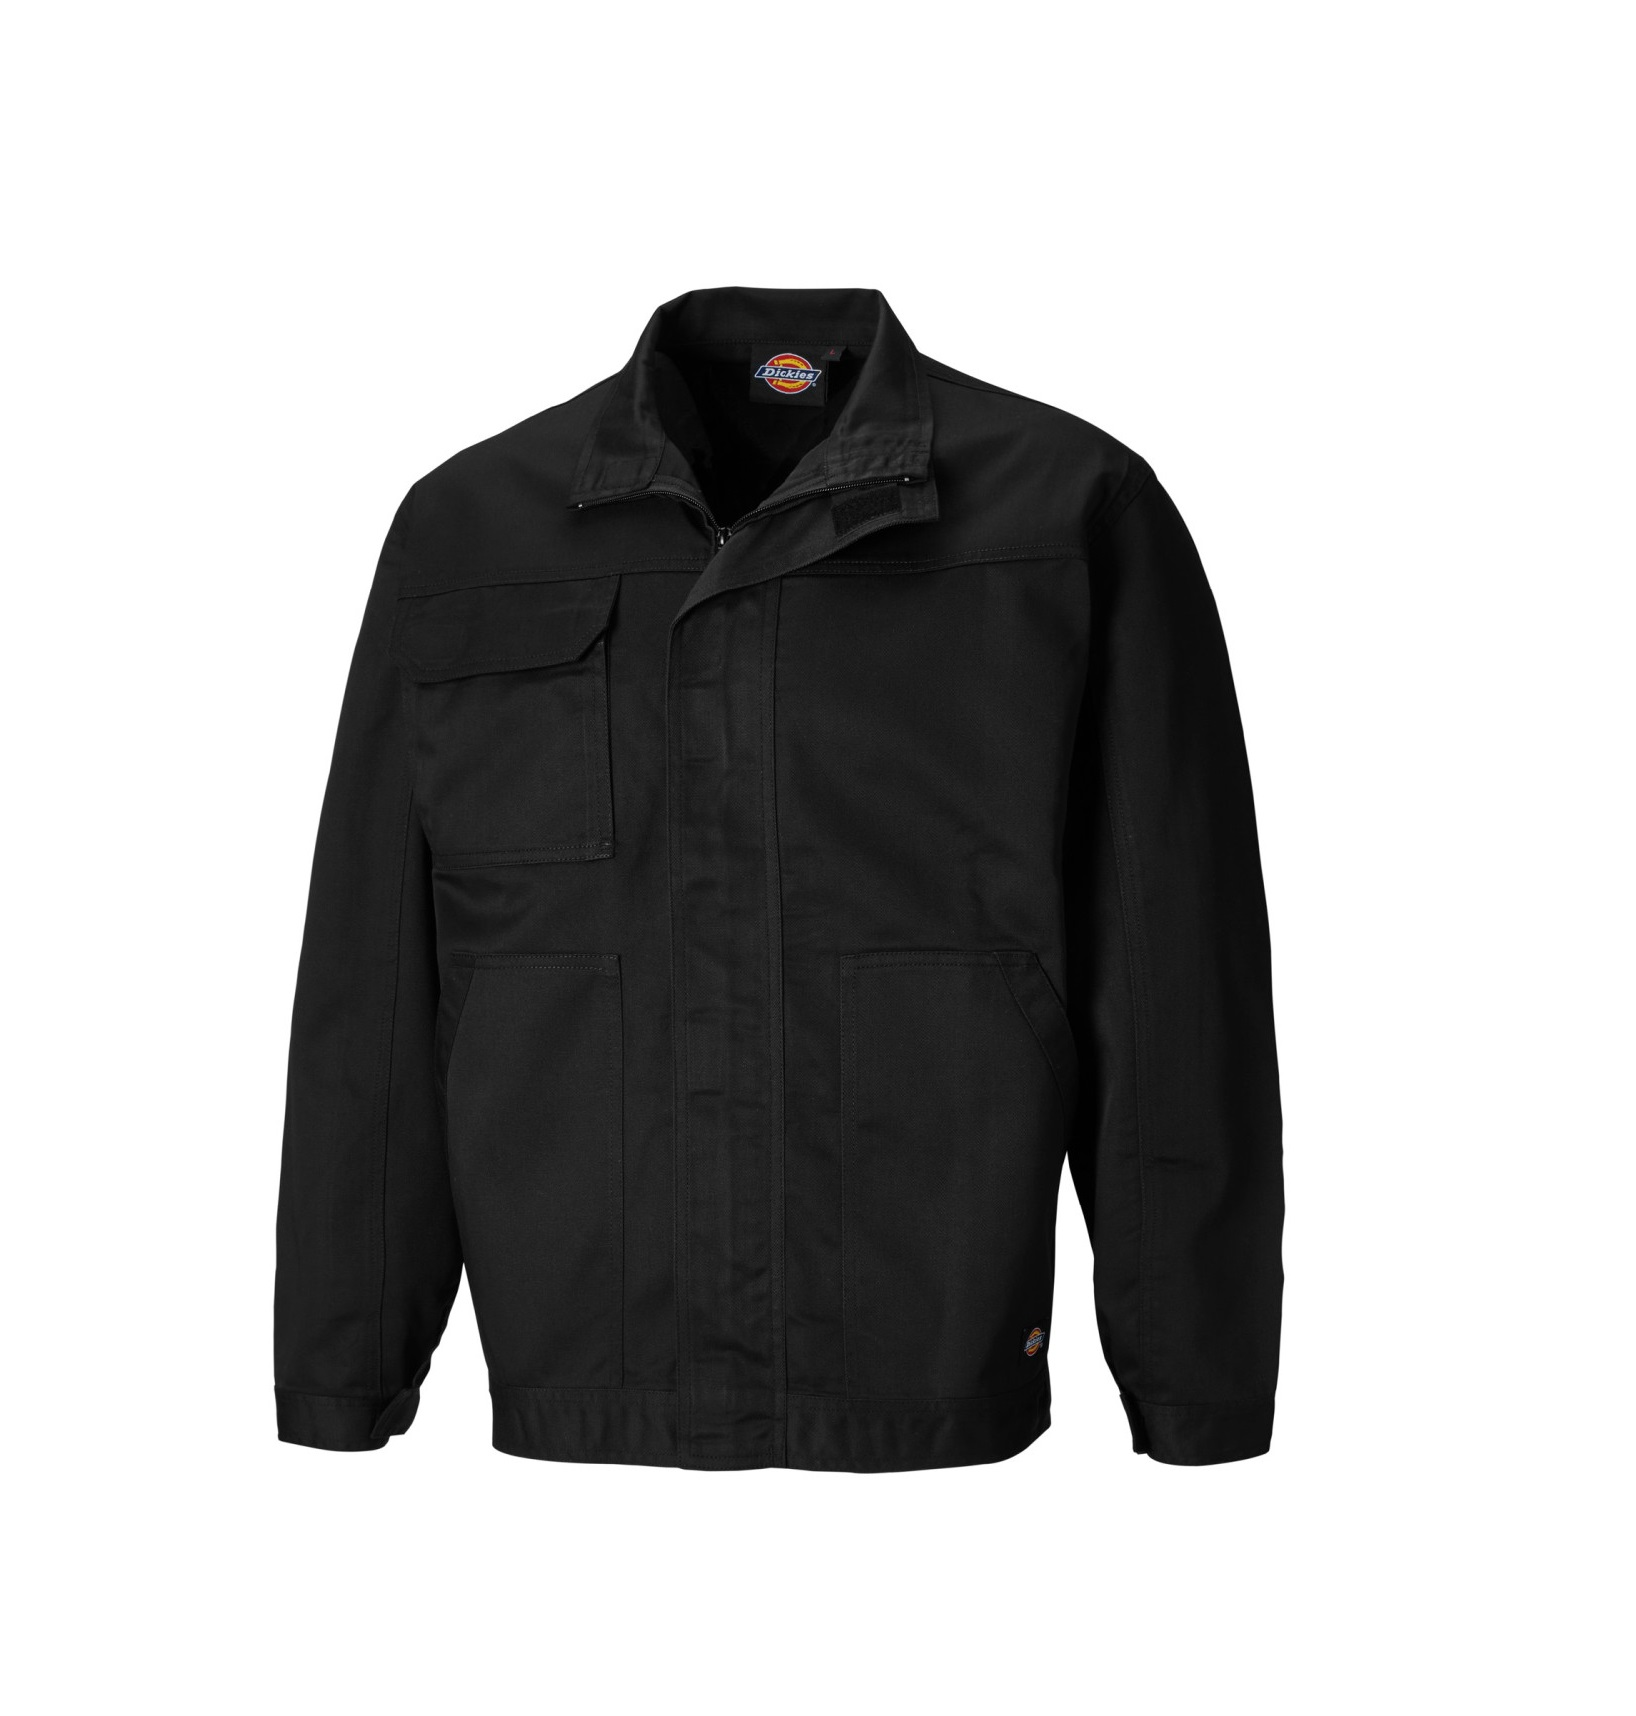 Black dickie work jacket, hot and horny porn stars